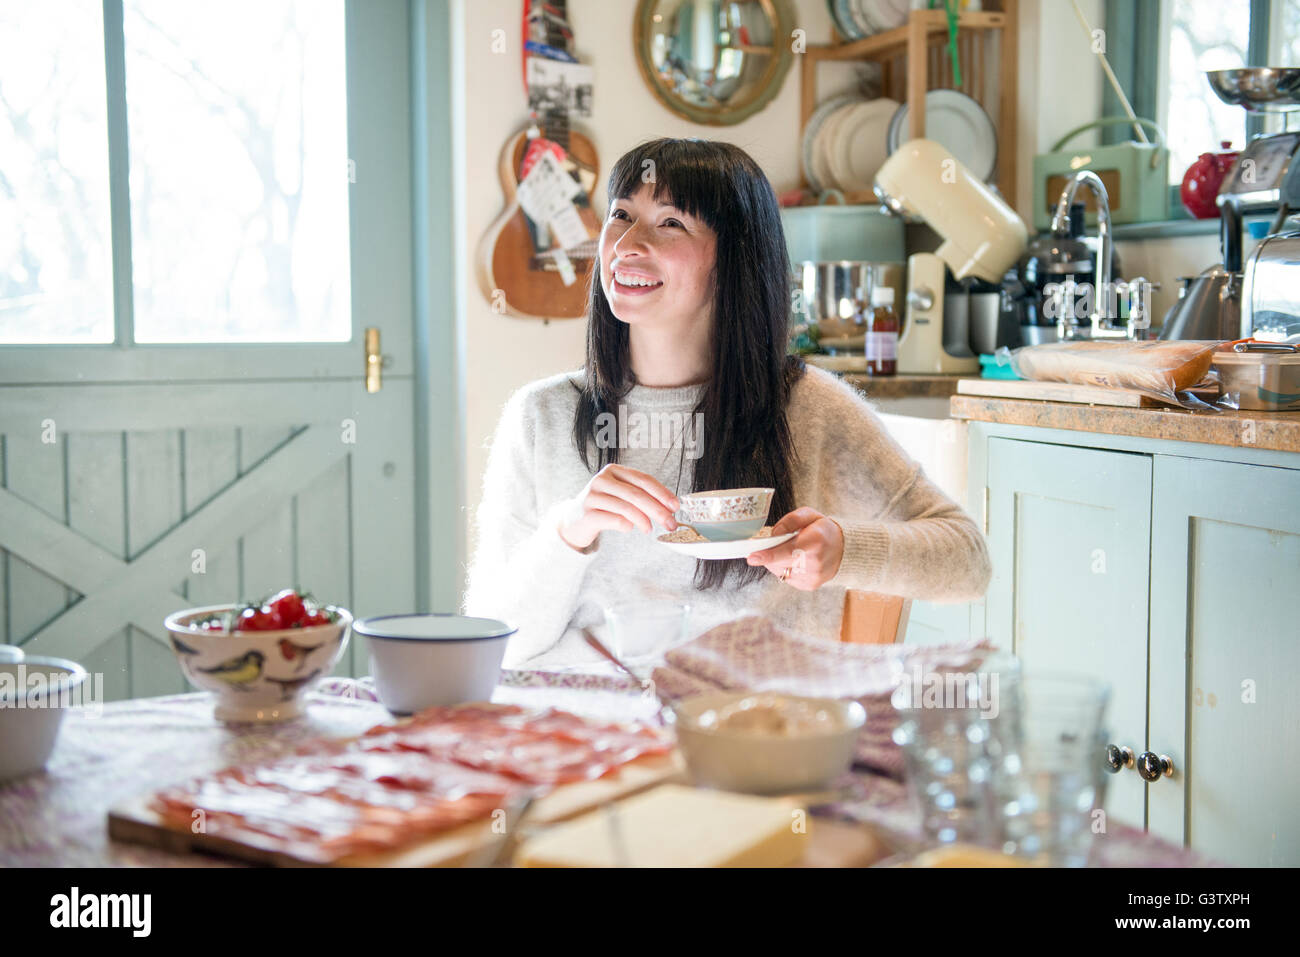 A dark haired woman sitting in a kitchen chatting holding a tea cup. - Stock Image